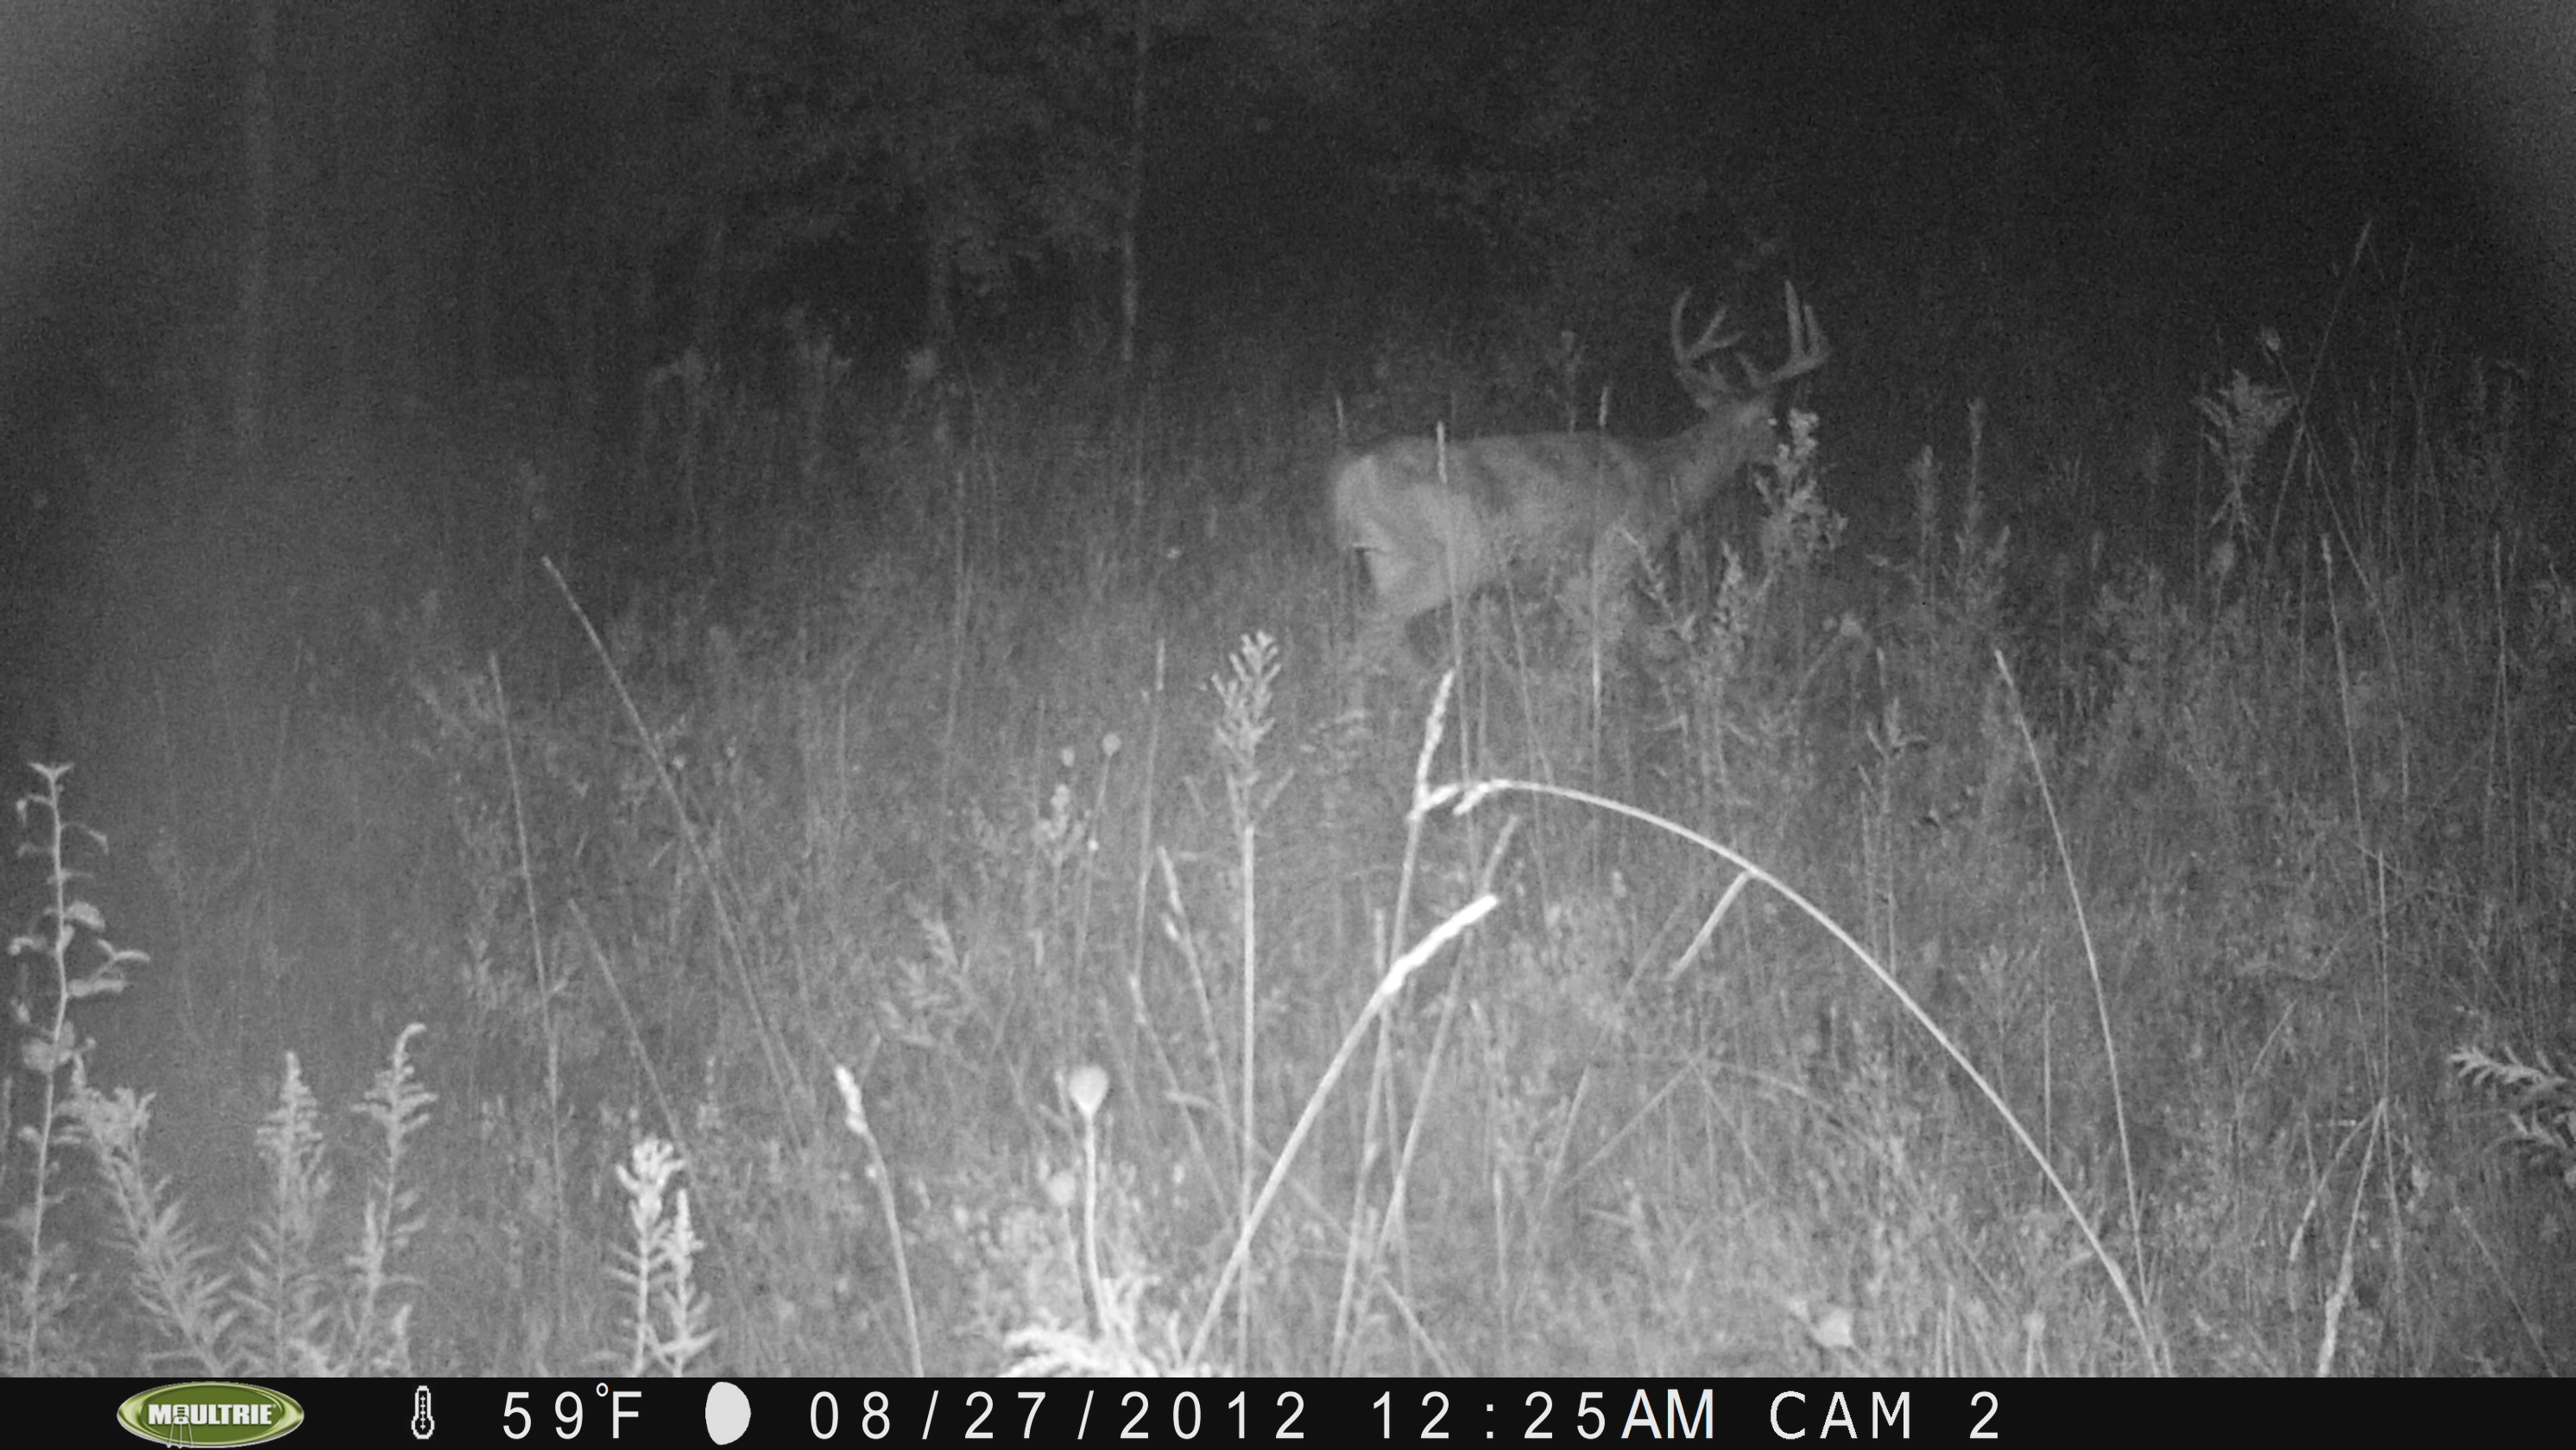 Knowing this 8pt was in the area made it much easier to pass on those borderline bucks that really needed that extra year.